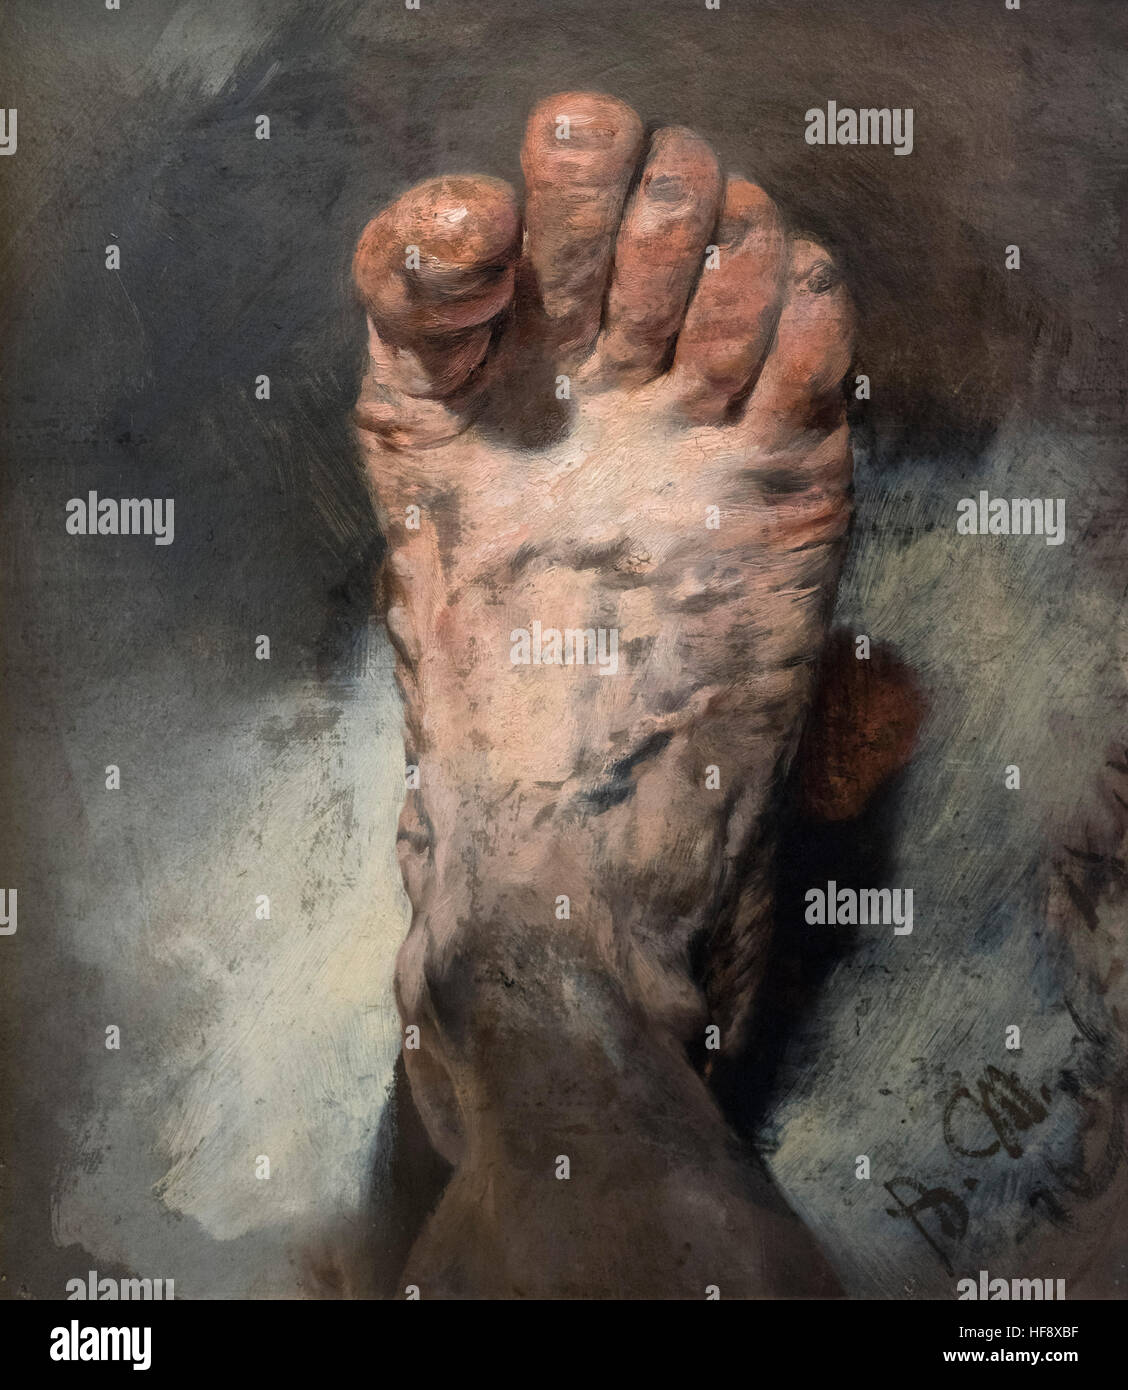 Adolph Menzel (1815-1905), The Foot of the Artist, 1876. Der Fuß des Künstlers. - Stock Image